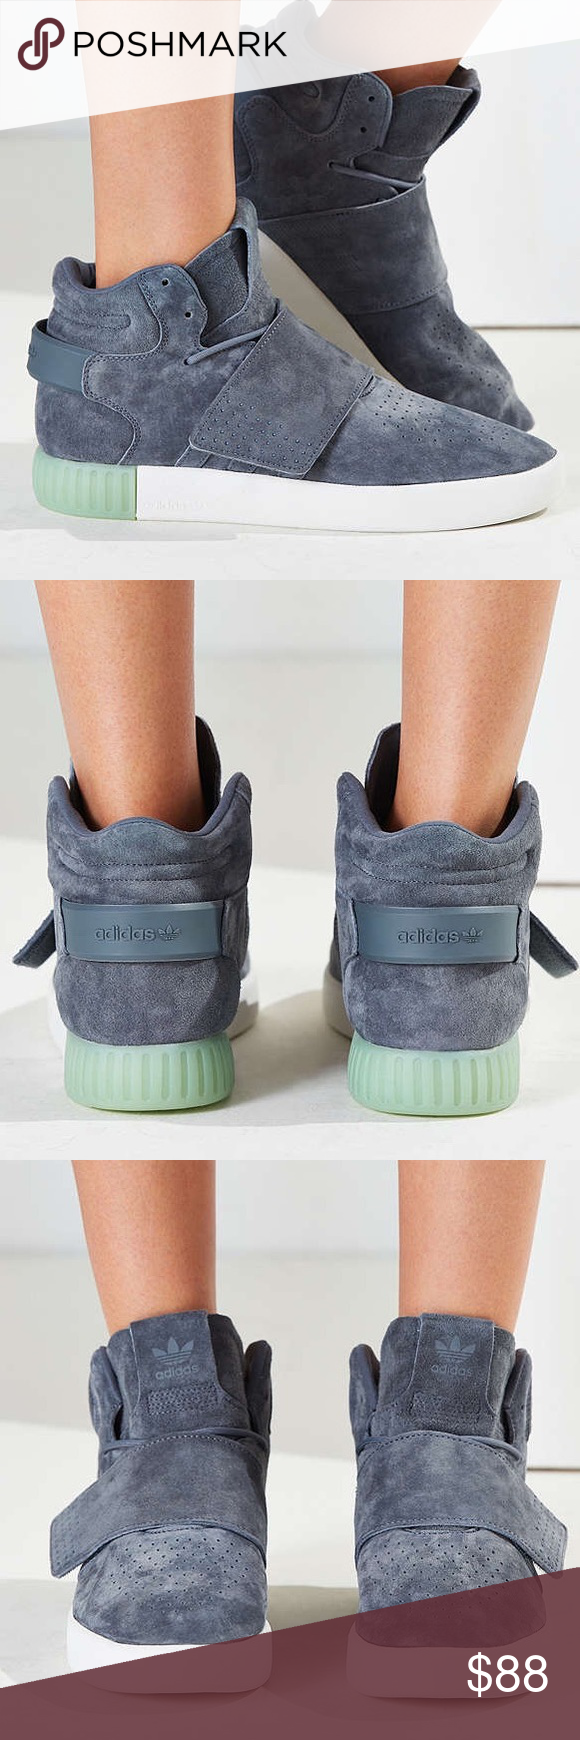 New adidas originals tubular invader strap sneaker New adidas tubular invader  strap sneaker size 6 women s. Color is grey (onix icegreen). d08f2218fa